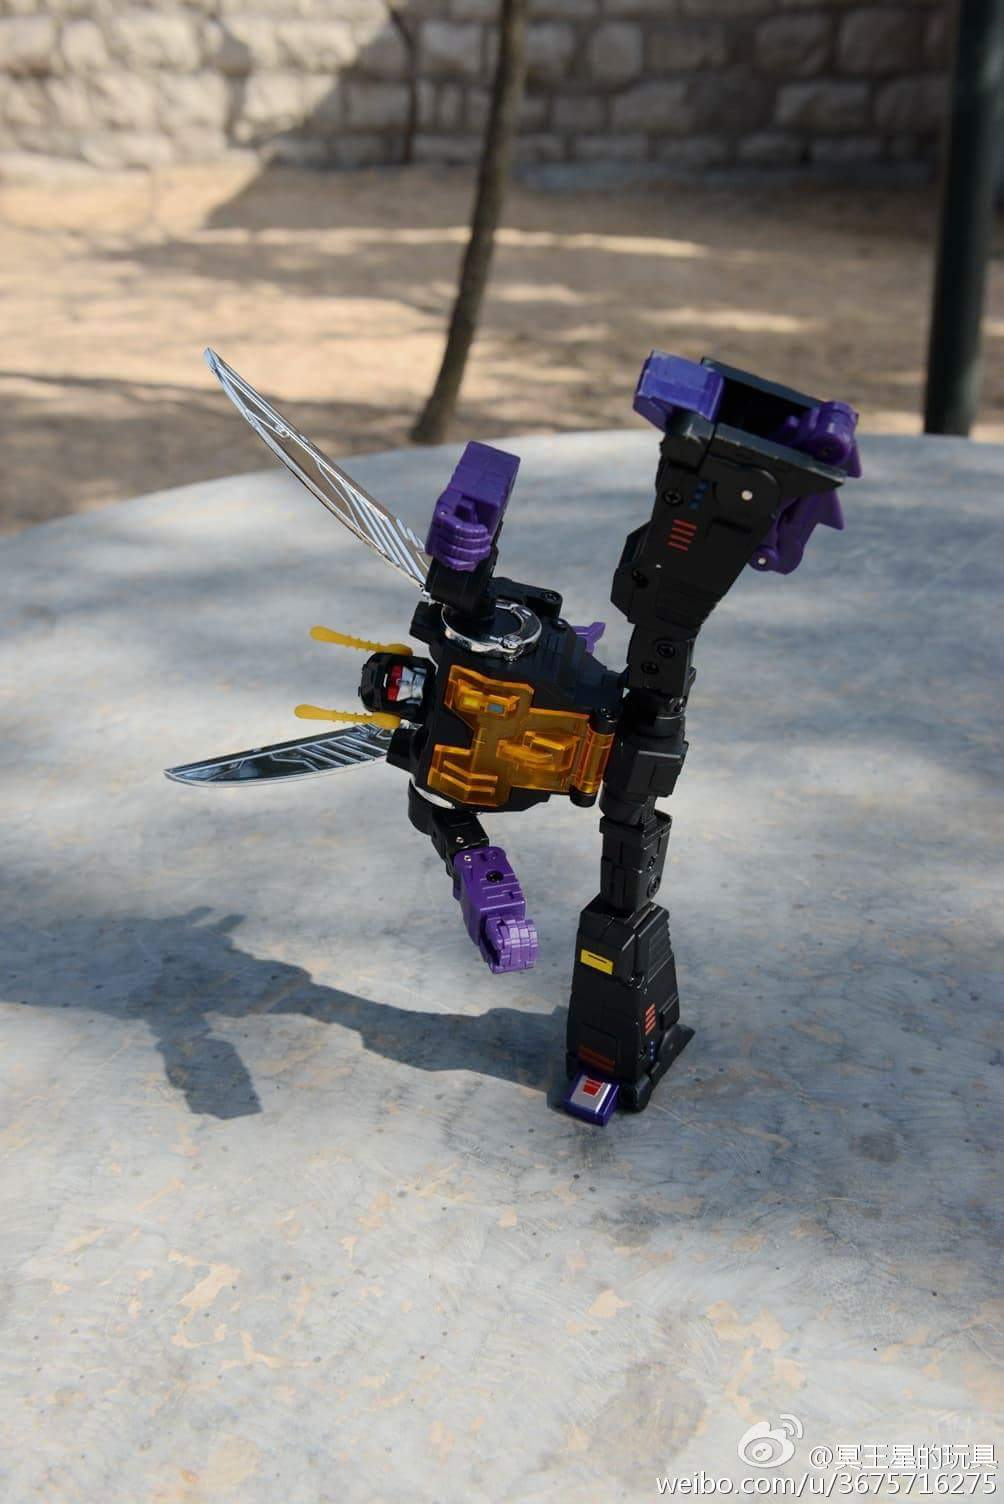 [Fanstoys] Produit Tiers - Jouet FT-12 Grenadier / FT-13 Mercenary / FT-14 Forager - aka Insecticons - Page 3 Bwi0wKKw